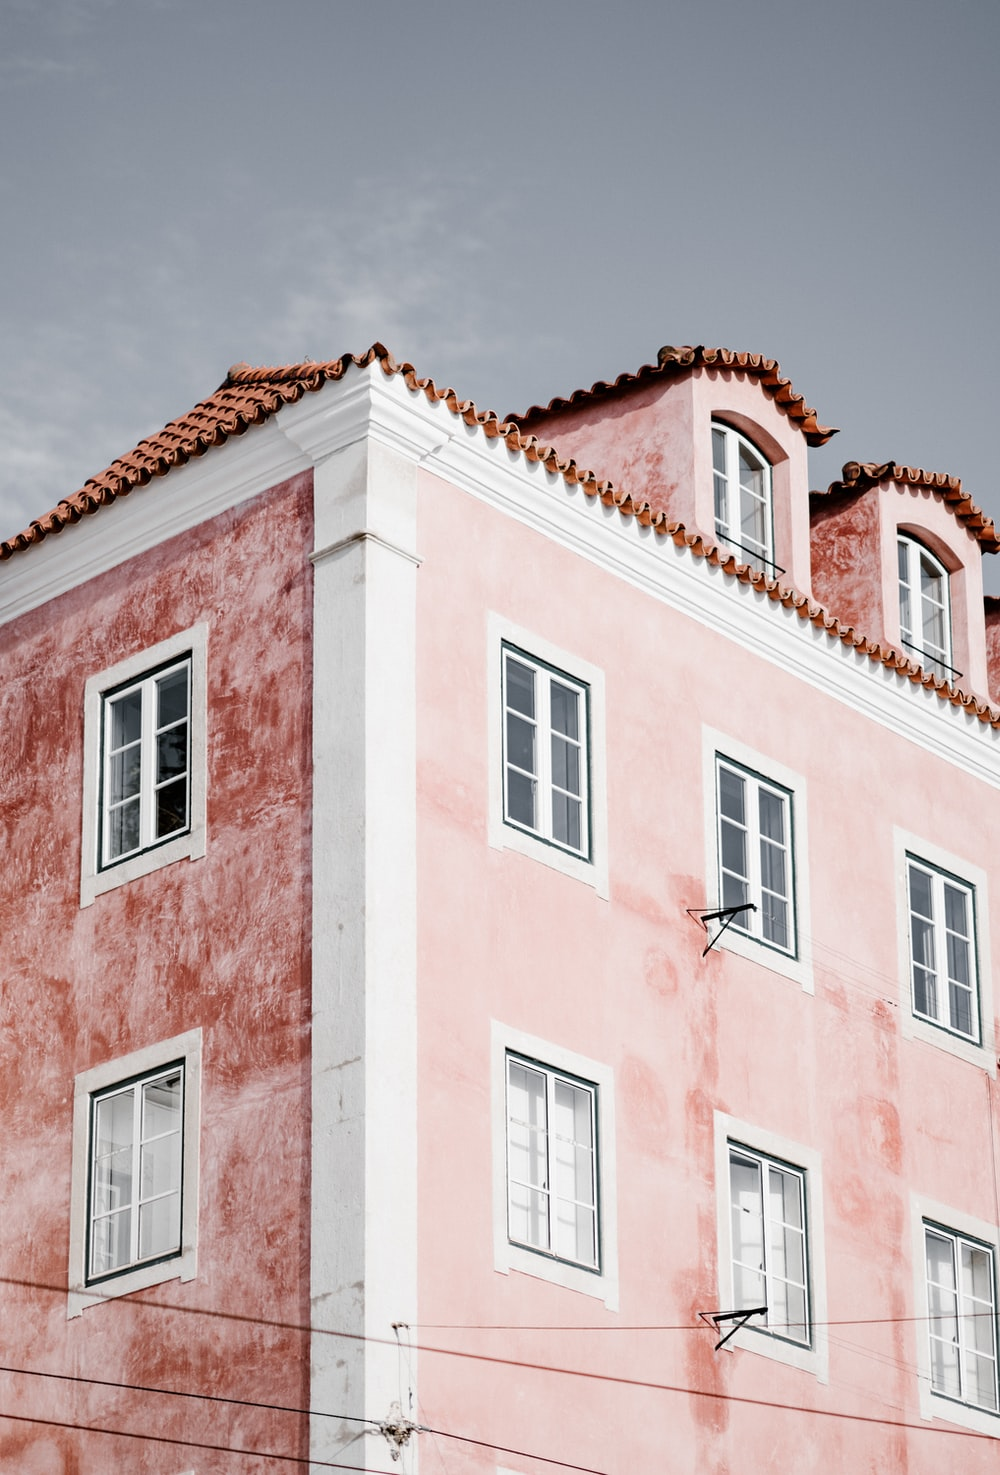 low angle photography of pink and red building structure